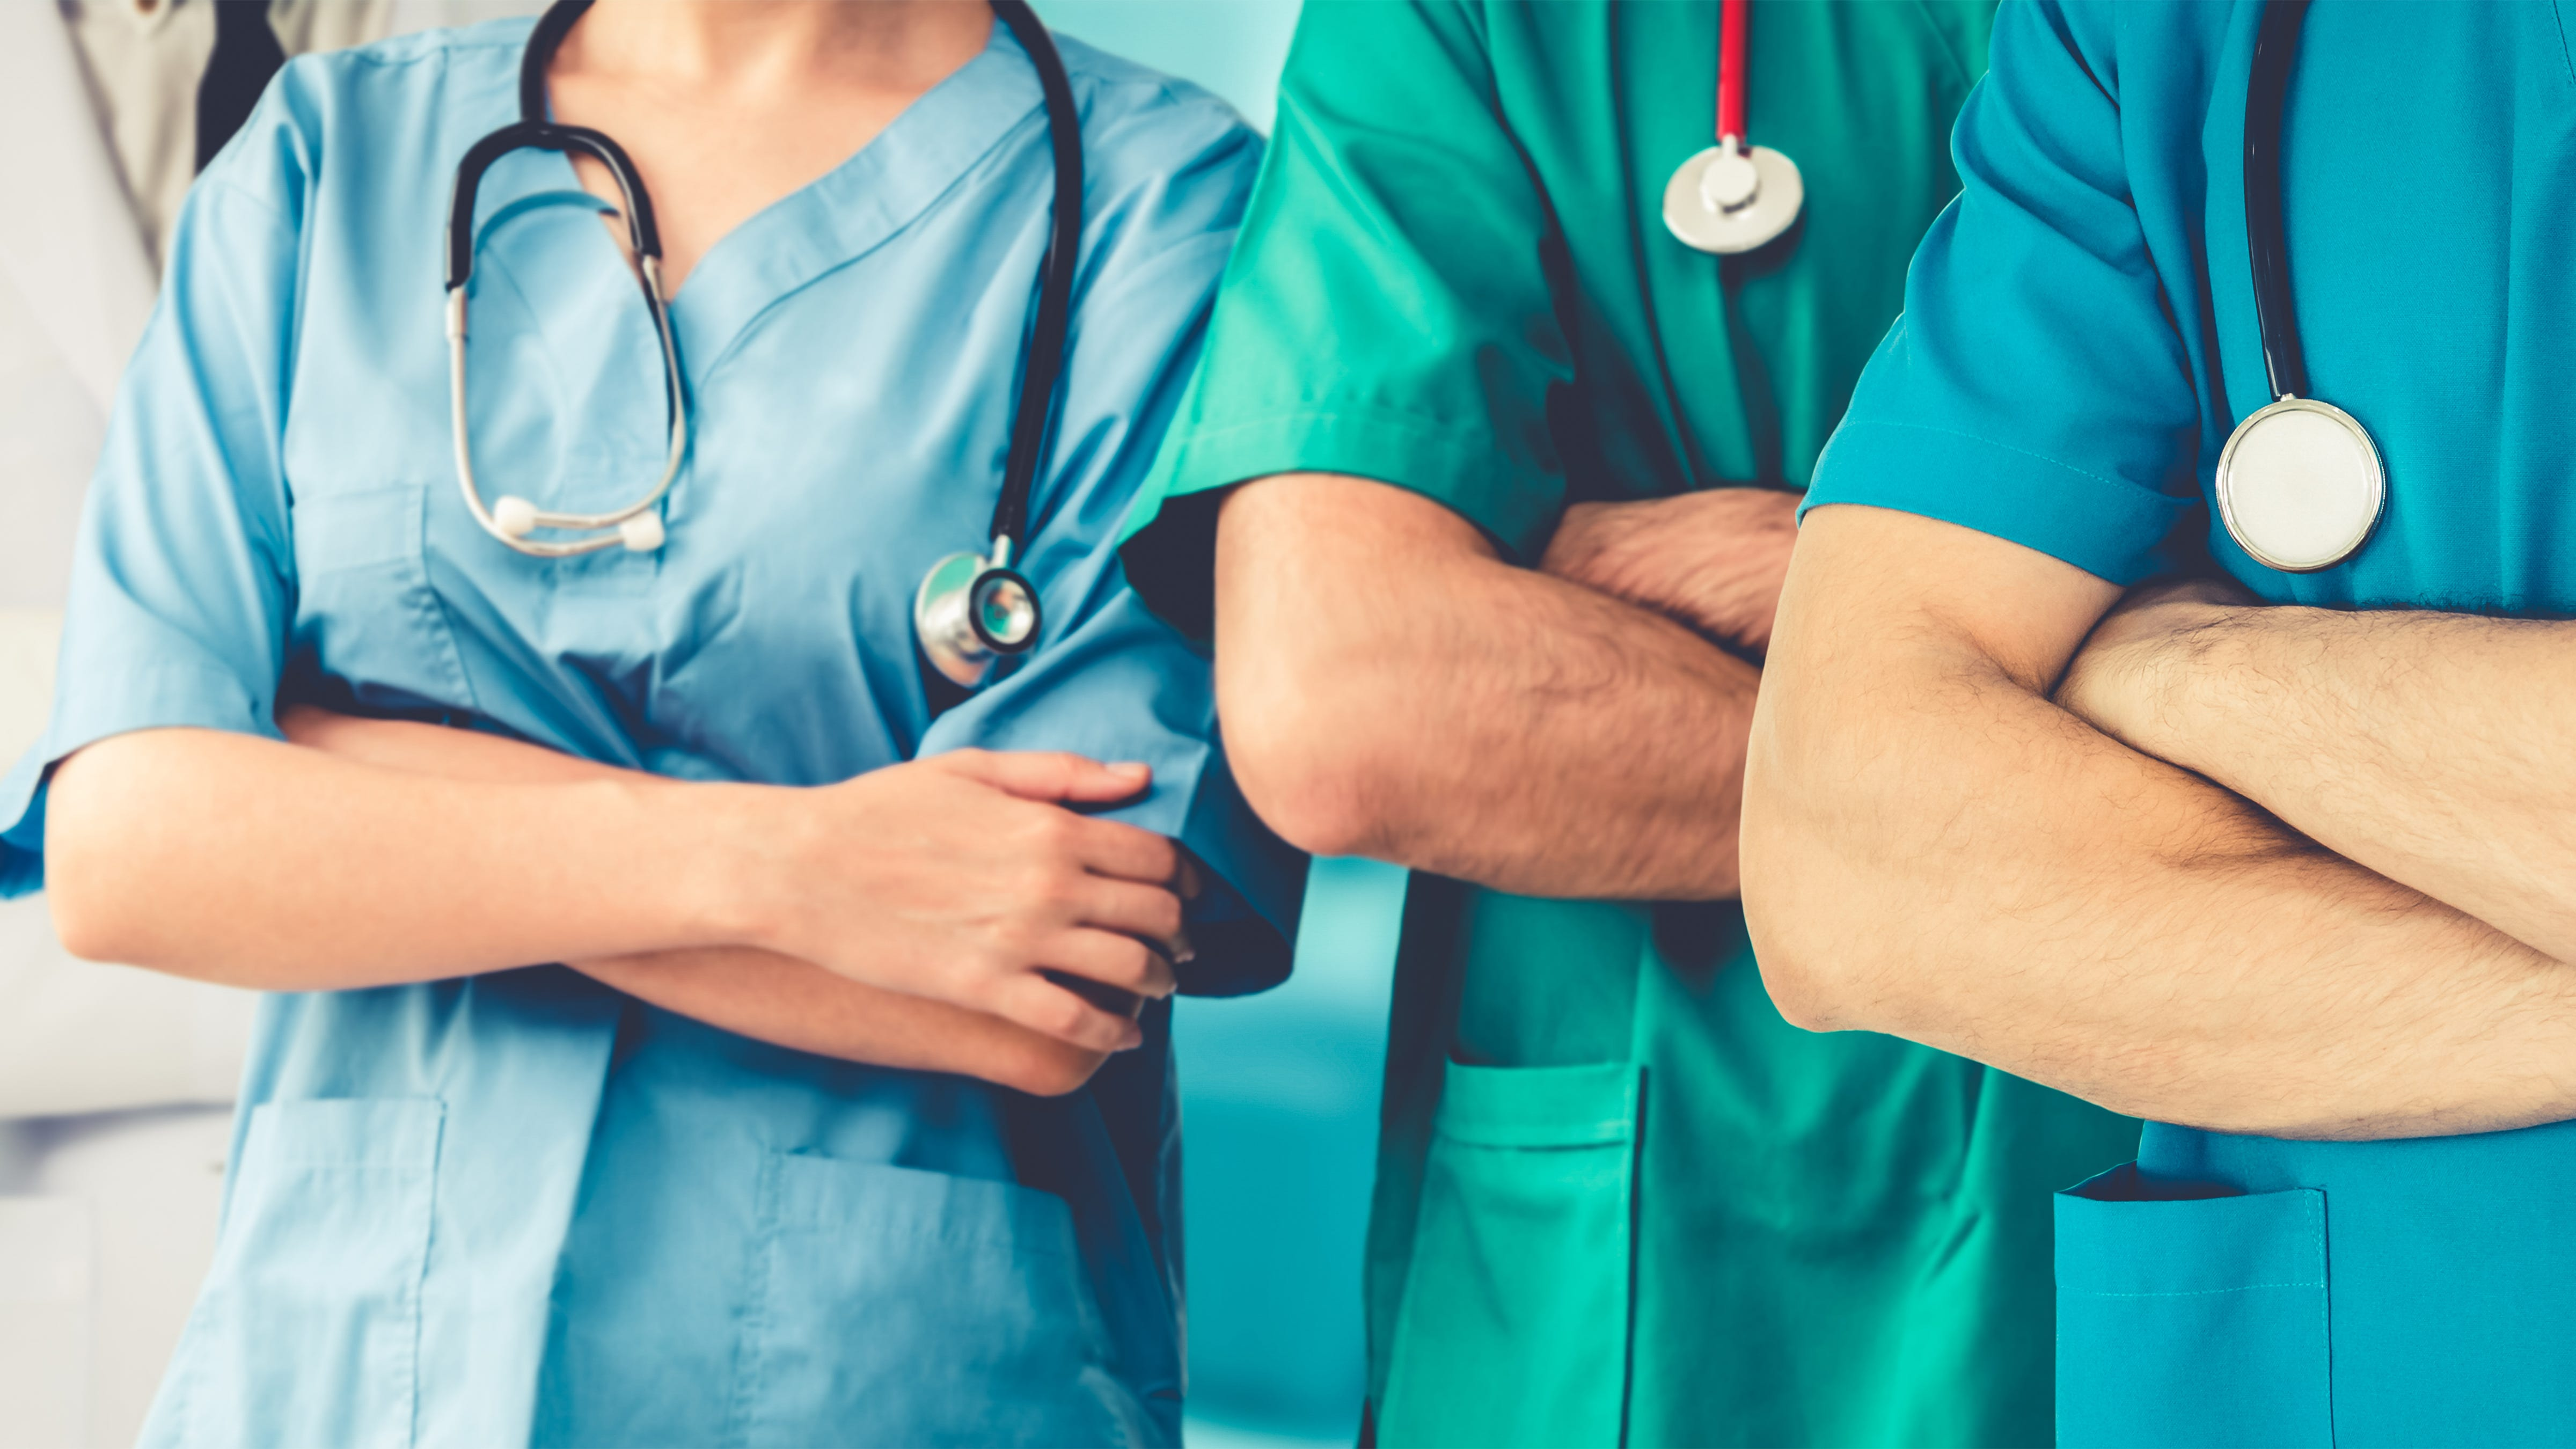 The best discounts for healthcare workers and first responders in 2021